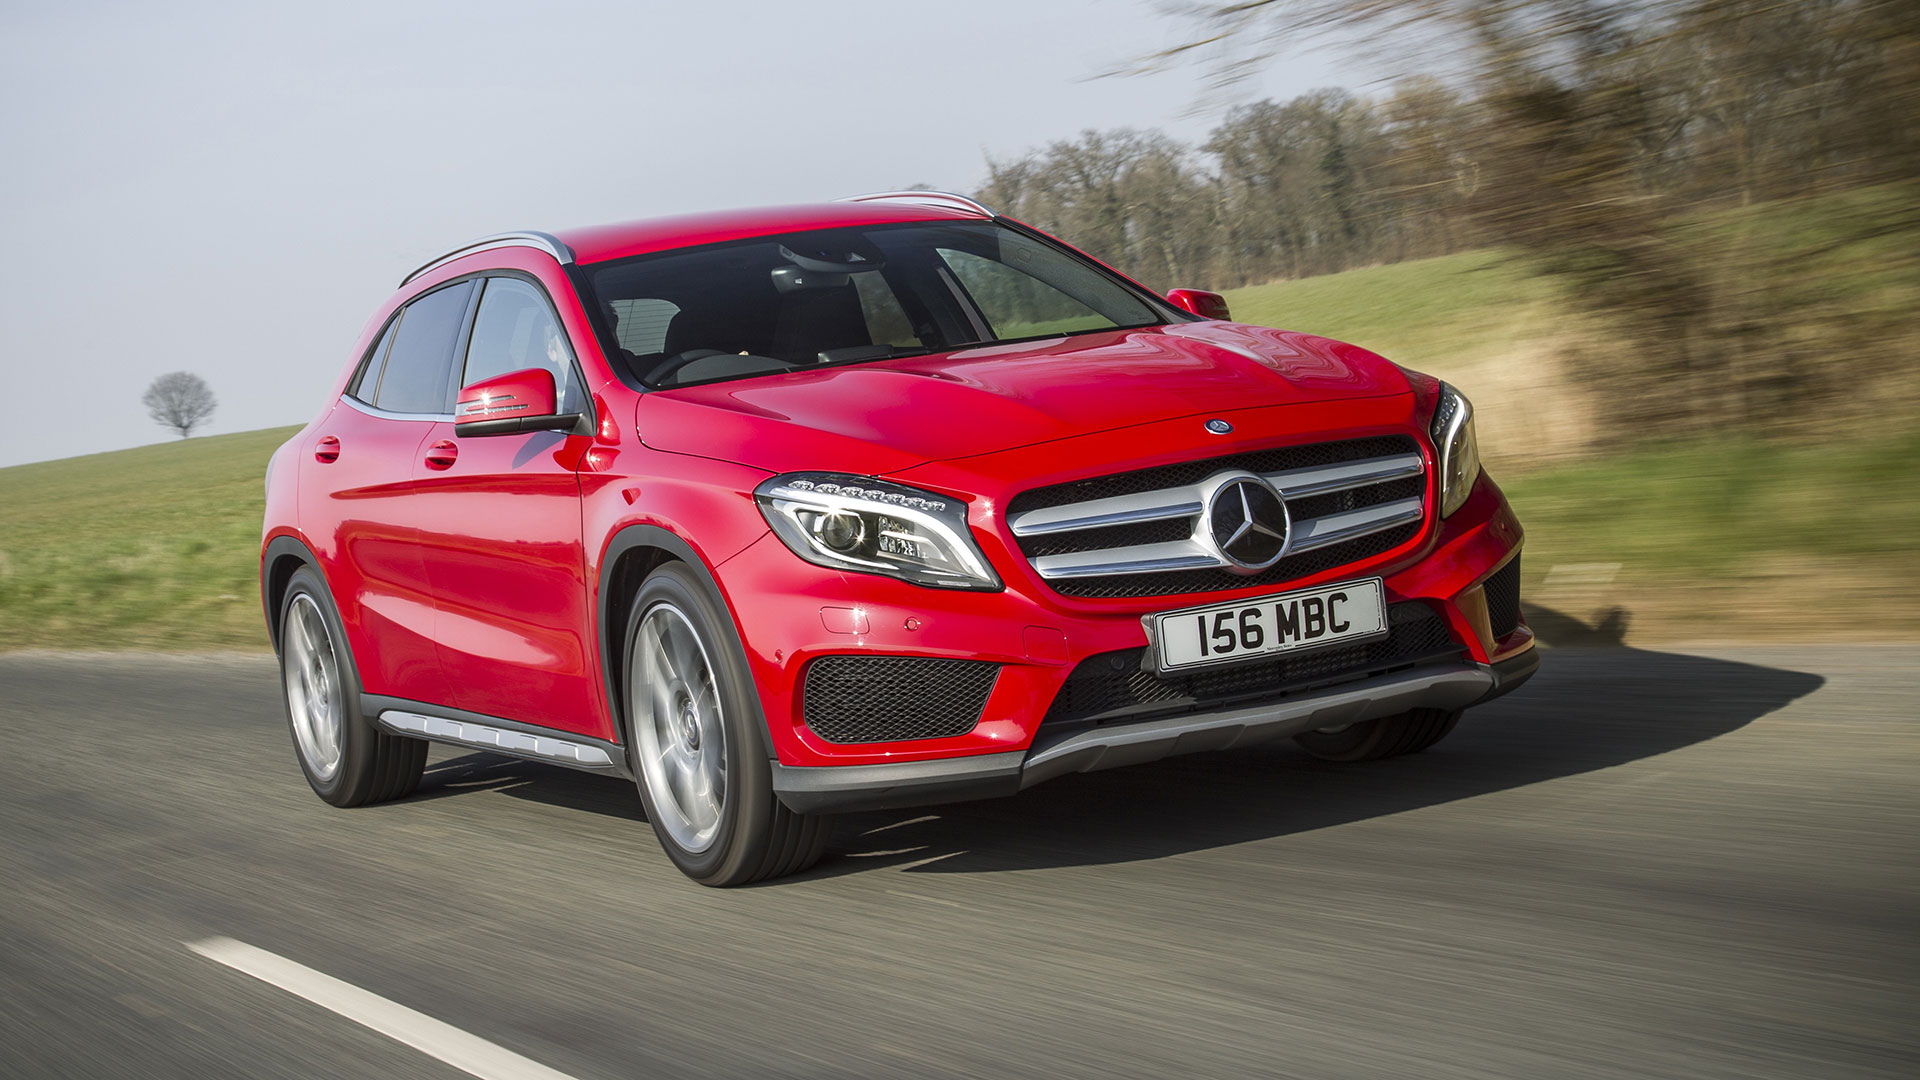 used mercedes benz gla class cars for sale on auto trader uk. Black Bedroom Furniture Sets. Home Design Ideas